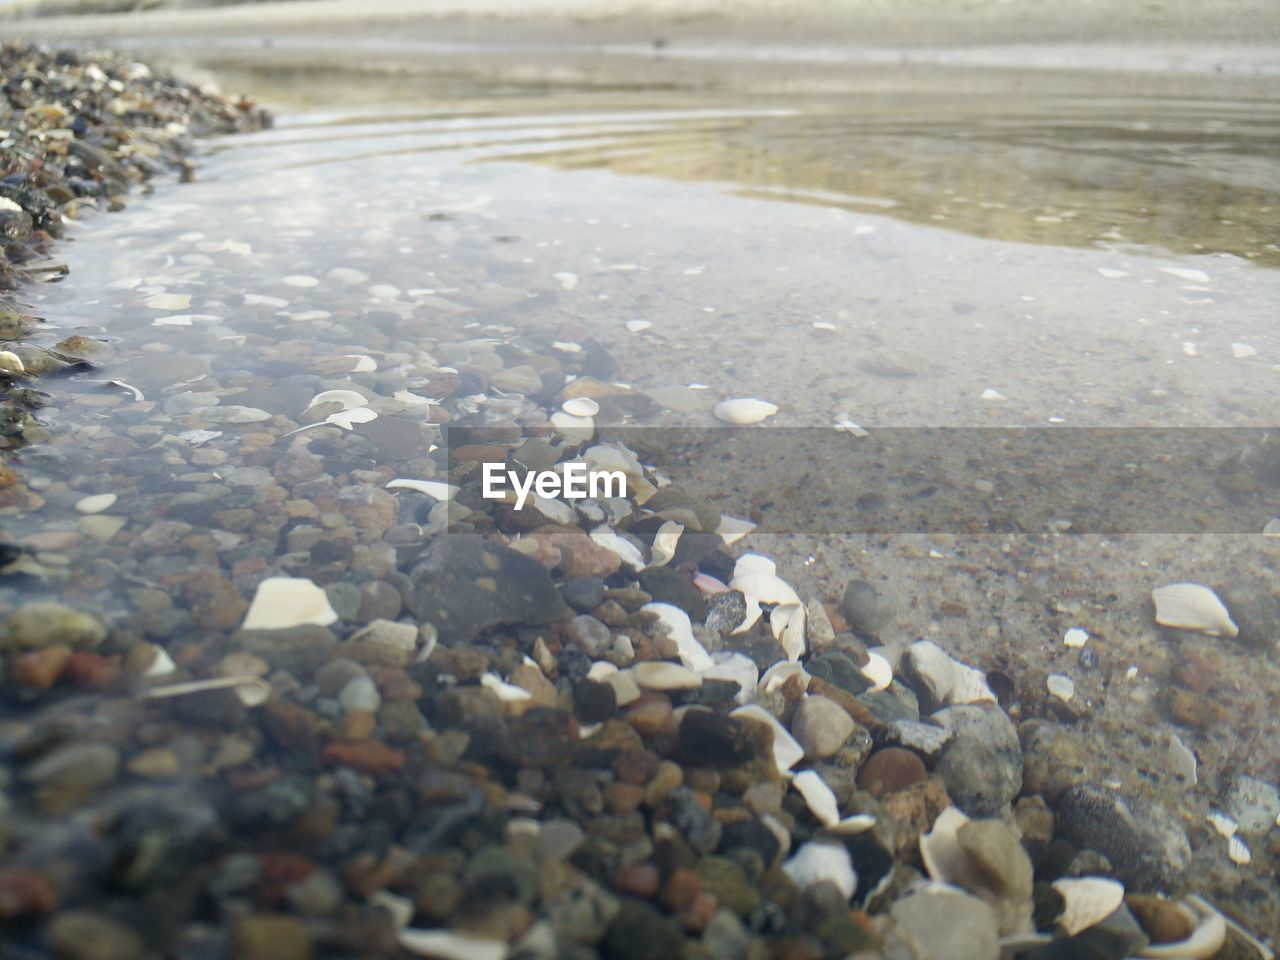 SURFACE LEVEL OF ROCKS IN WATER